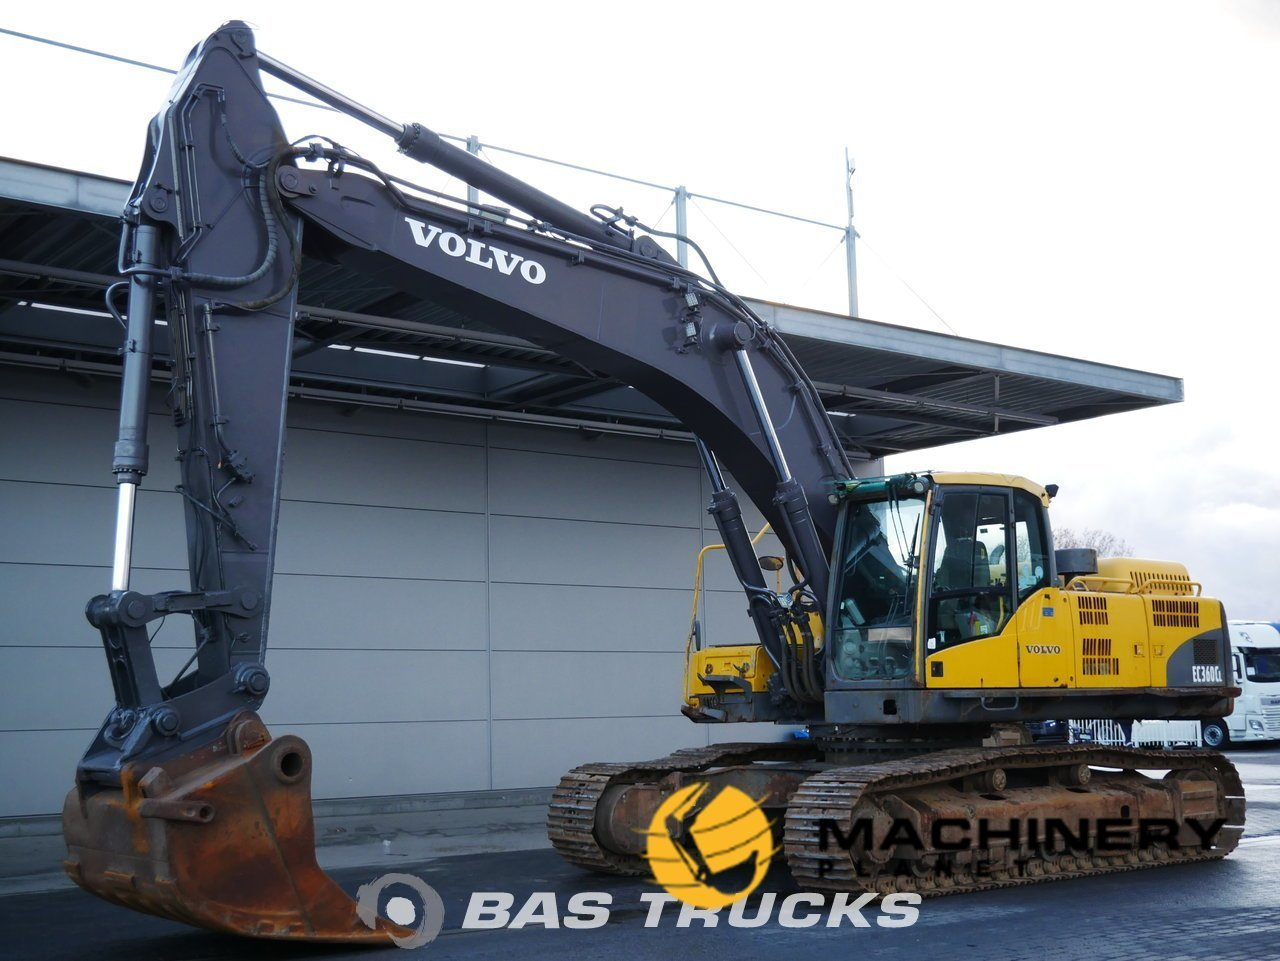 Used-Construction-equipment-Volvo-EC360C-L-Track-2008_147179_1-1554124188428_5ca20d9c6885a-1.jpg